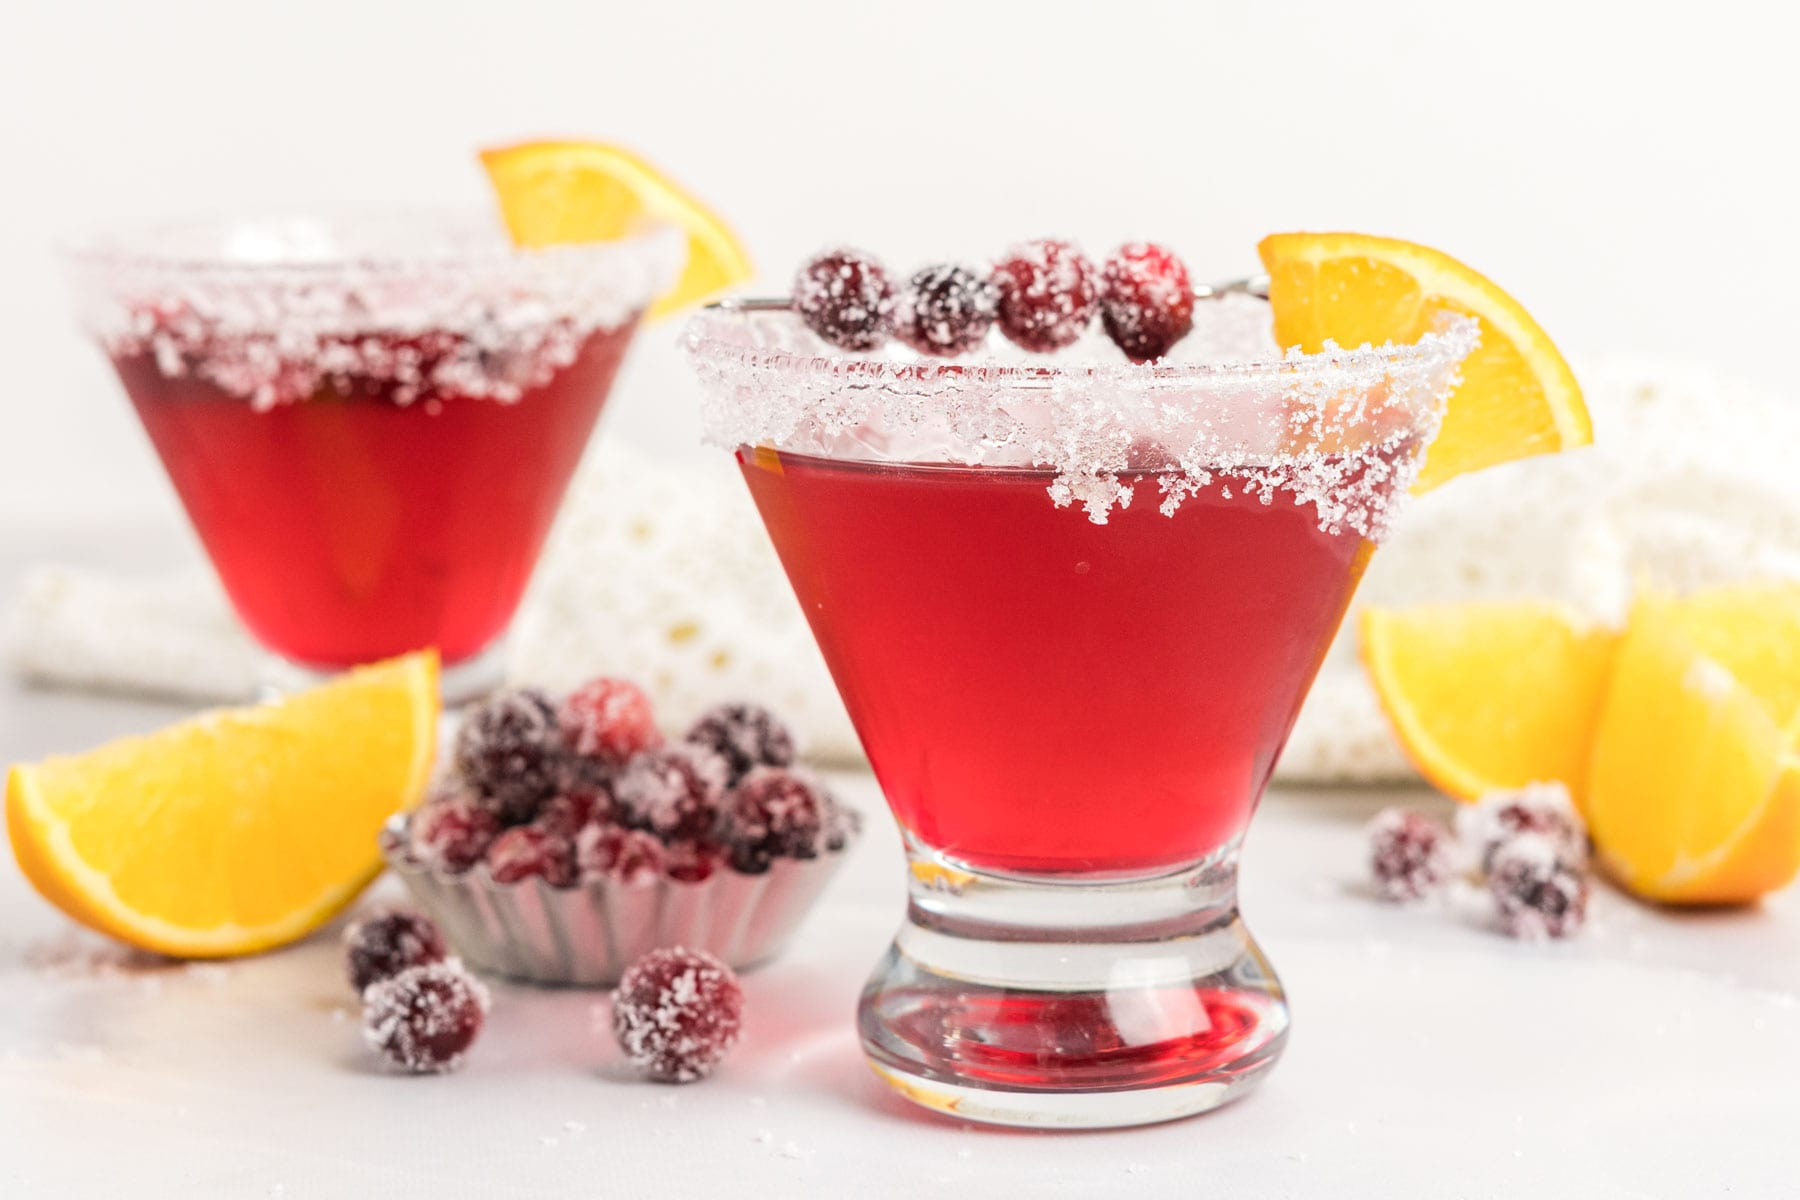 Cranberry martinis with sugared cranberries and orange sliced.